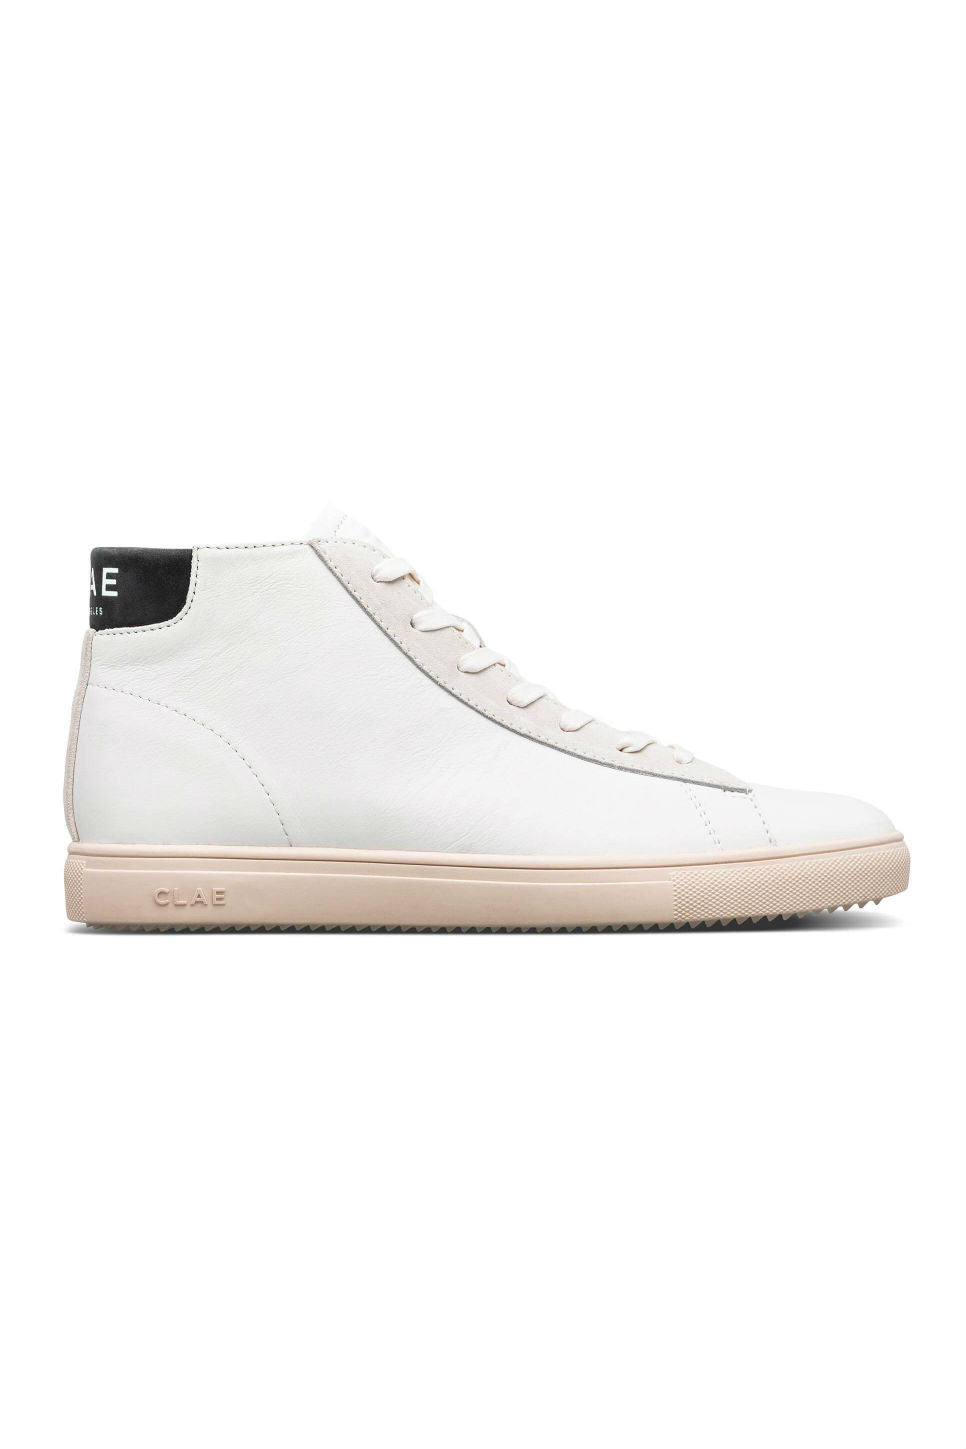 CLAE - Bradley Mid - White Leather/Black - Side